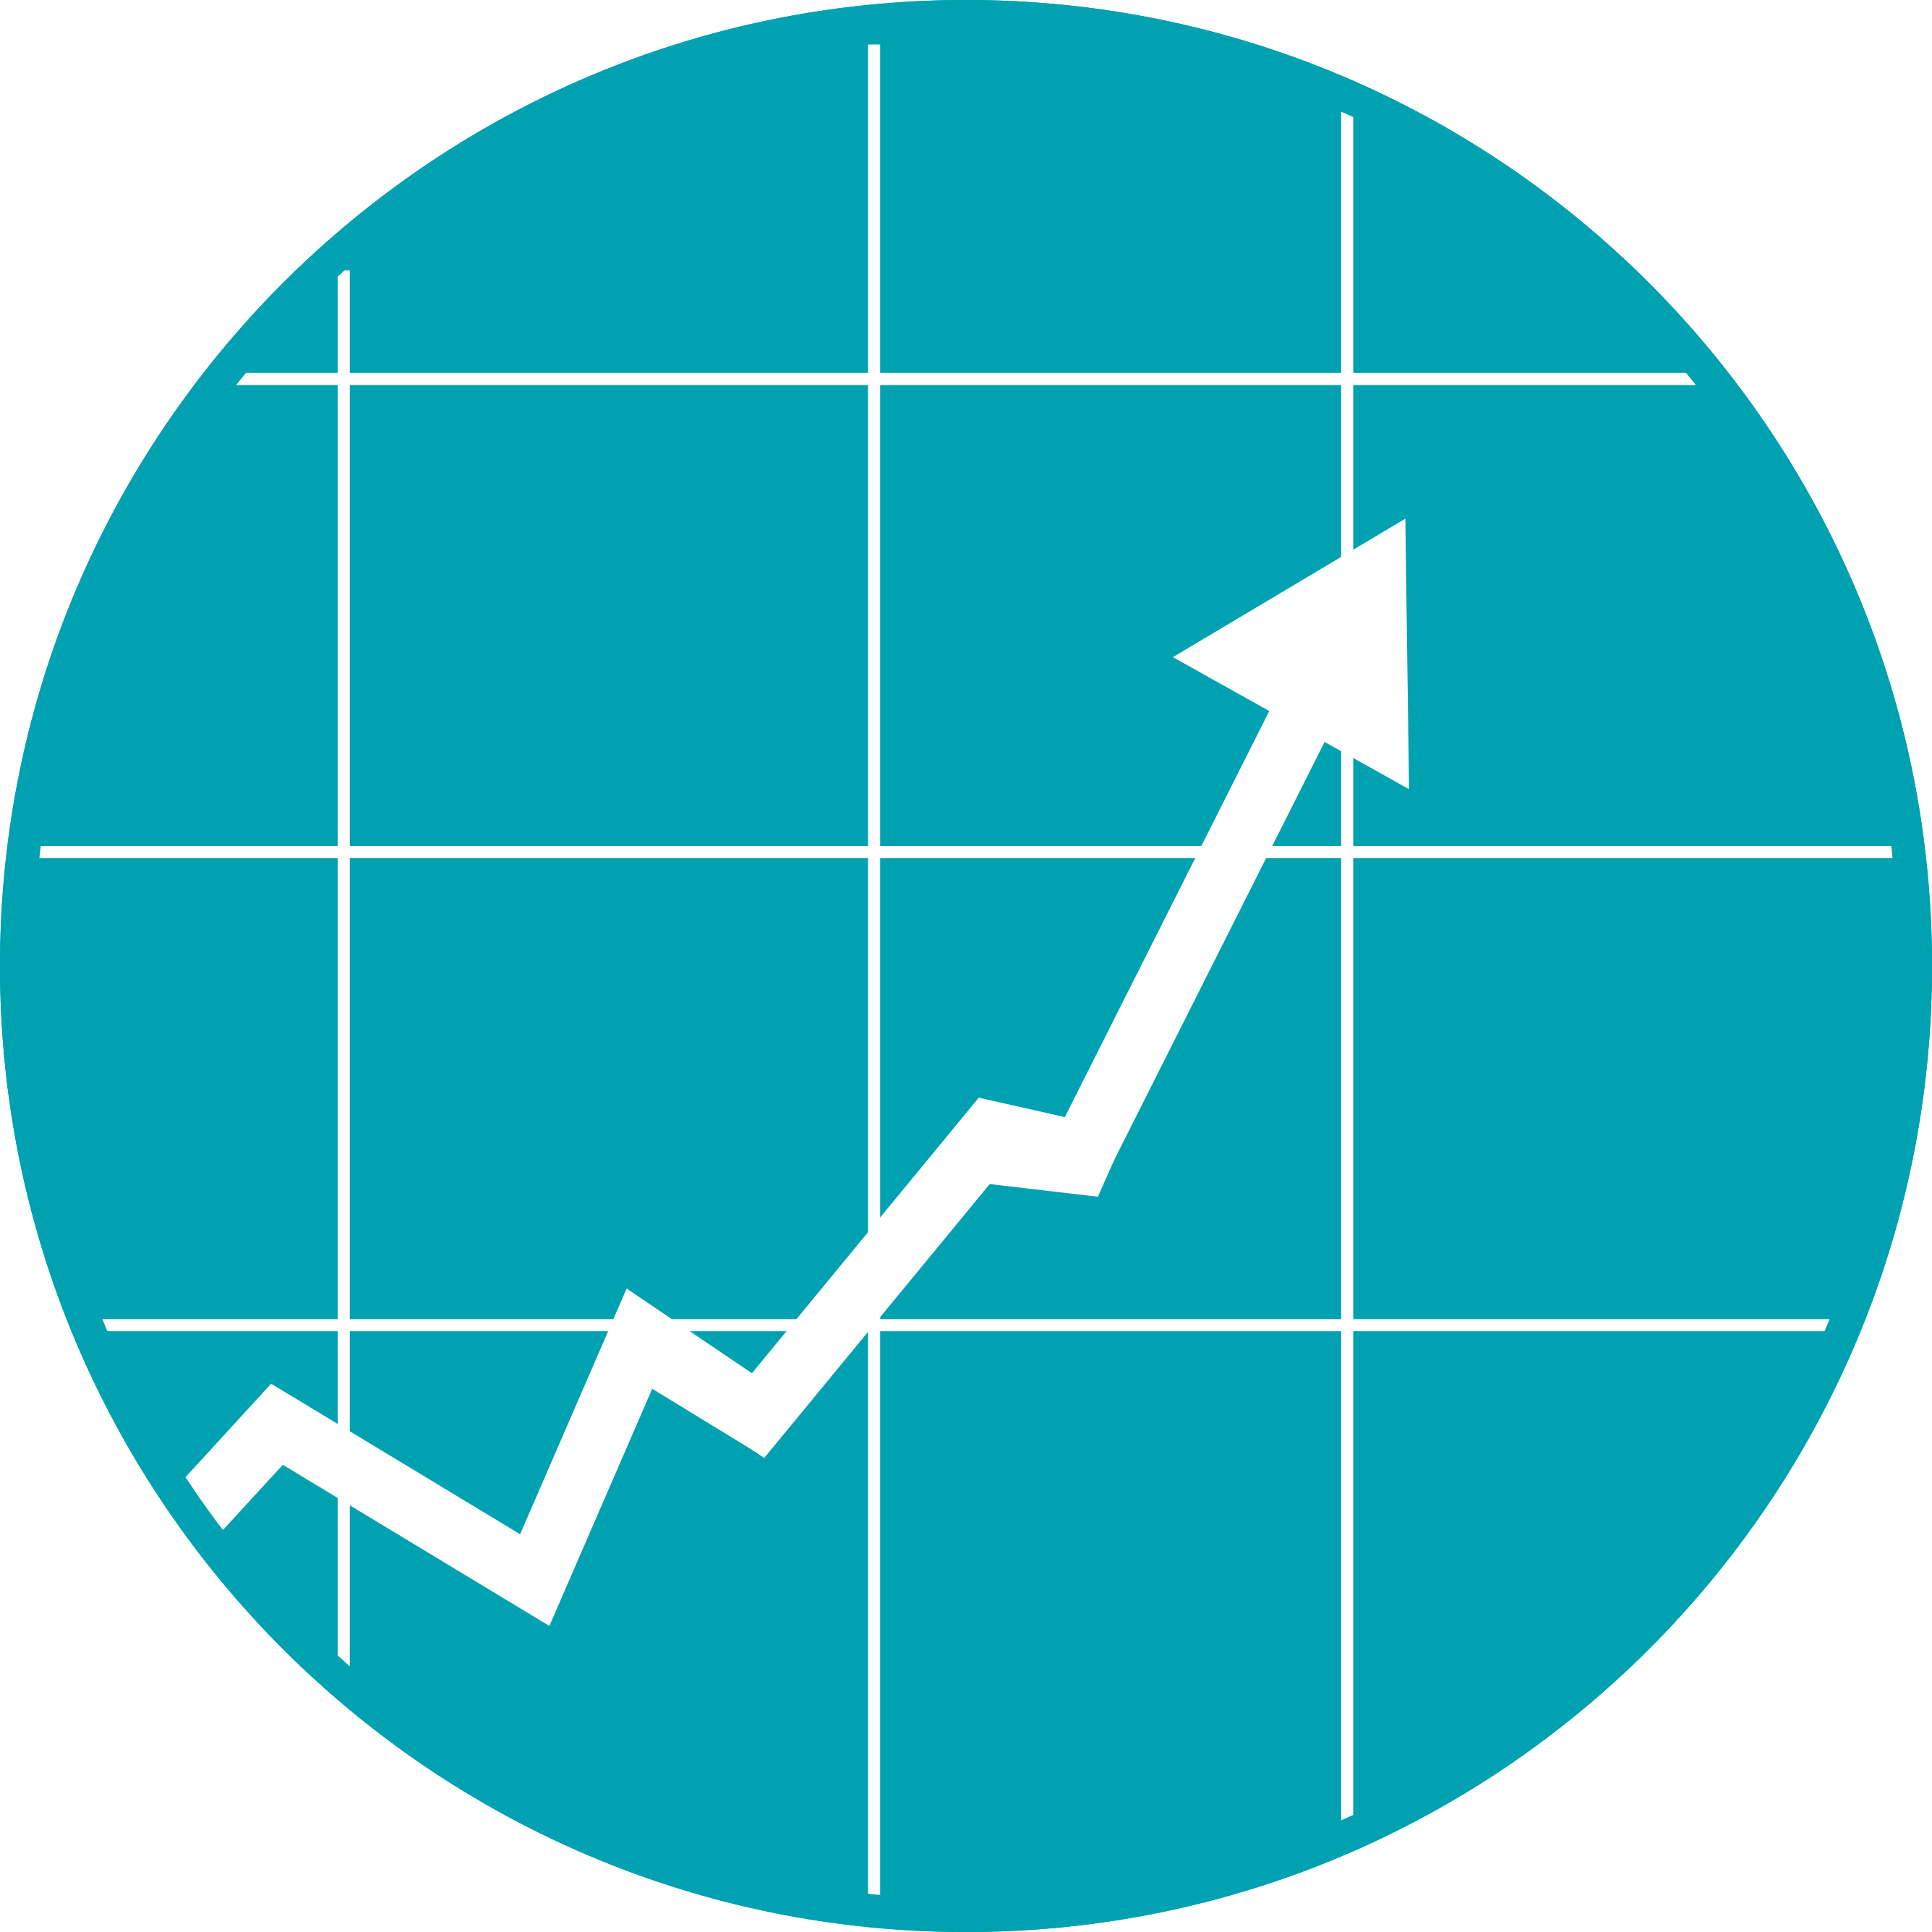 stock market icon png